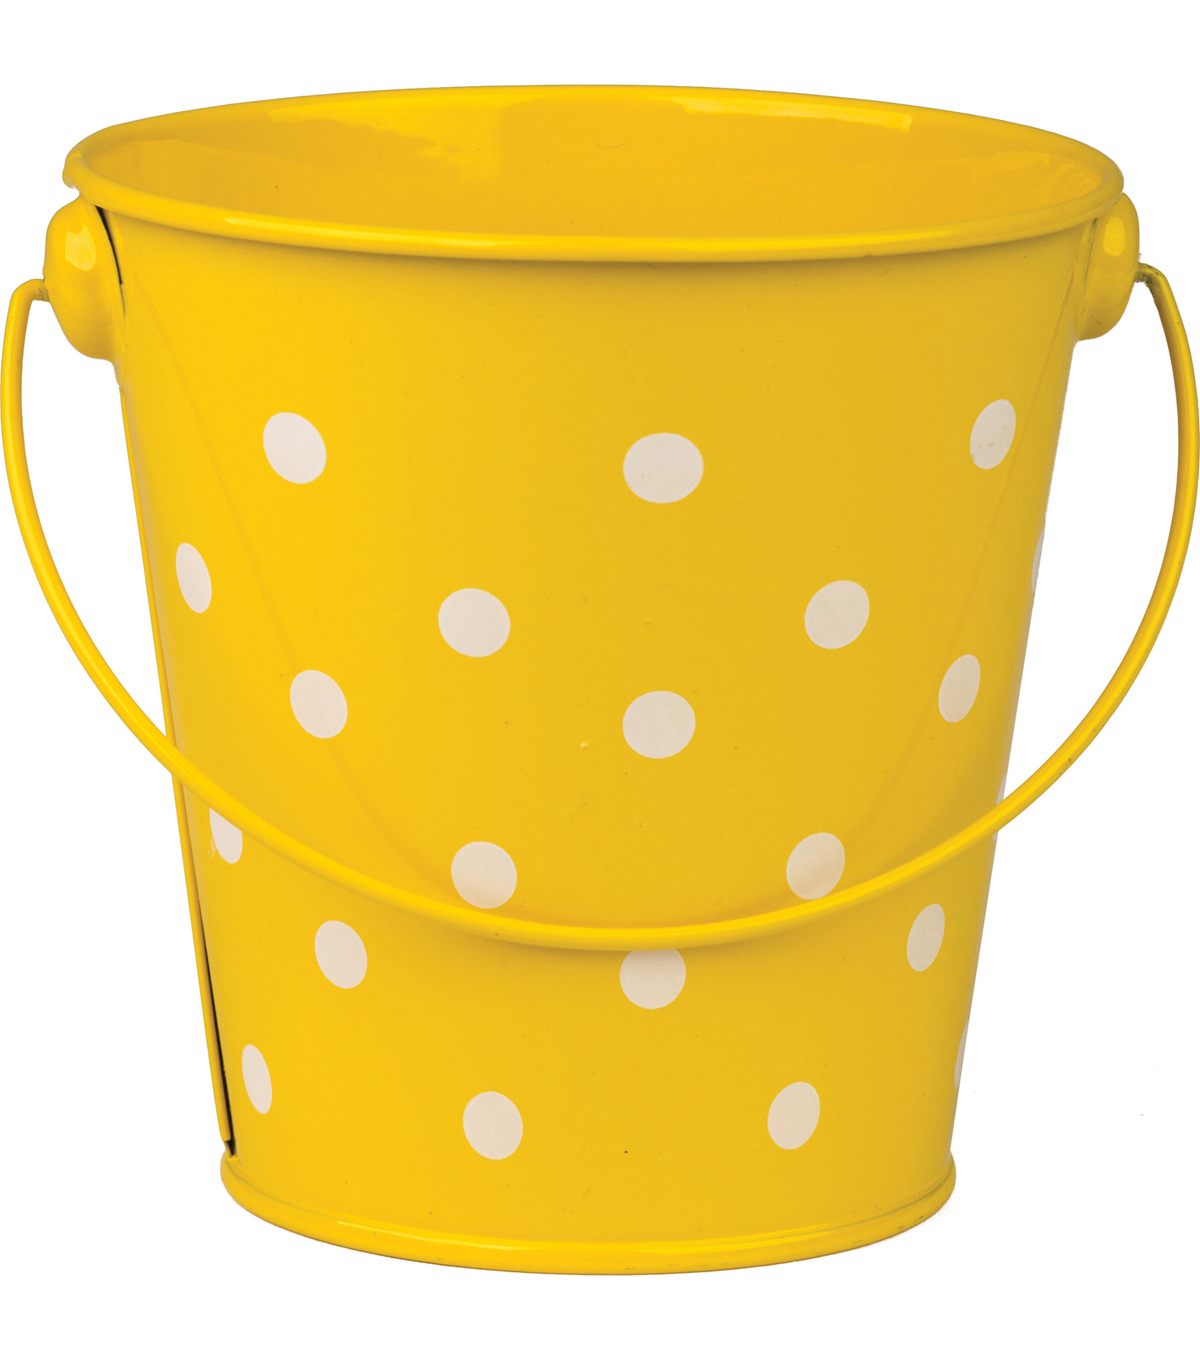 Teacher Created Resources Polka Dots Bucket, Yellow Pack of 6